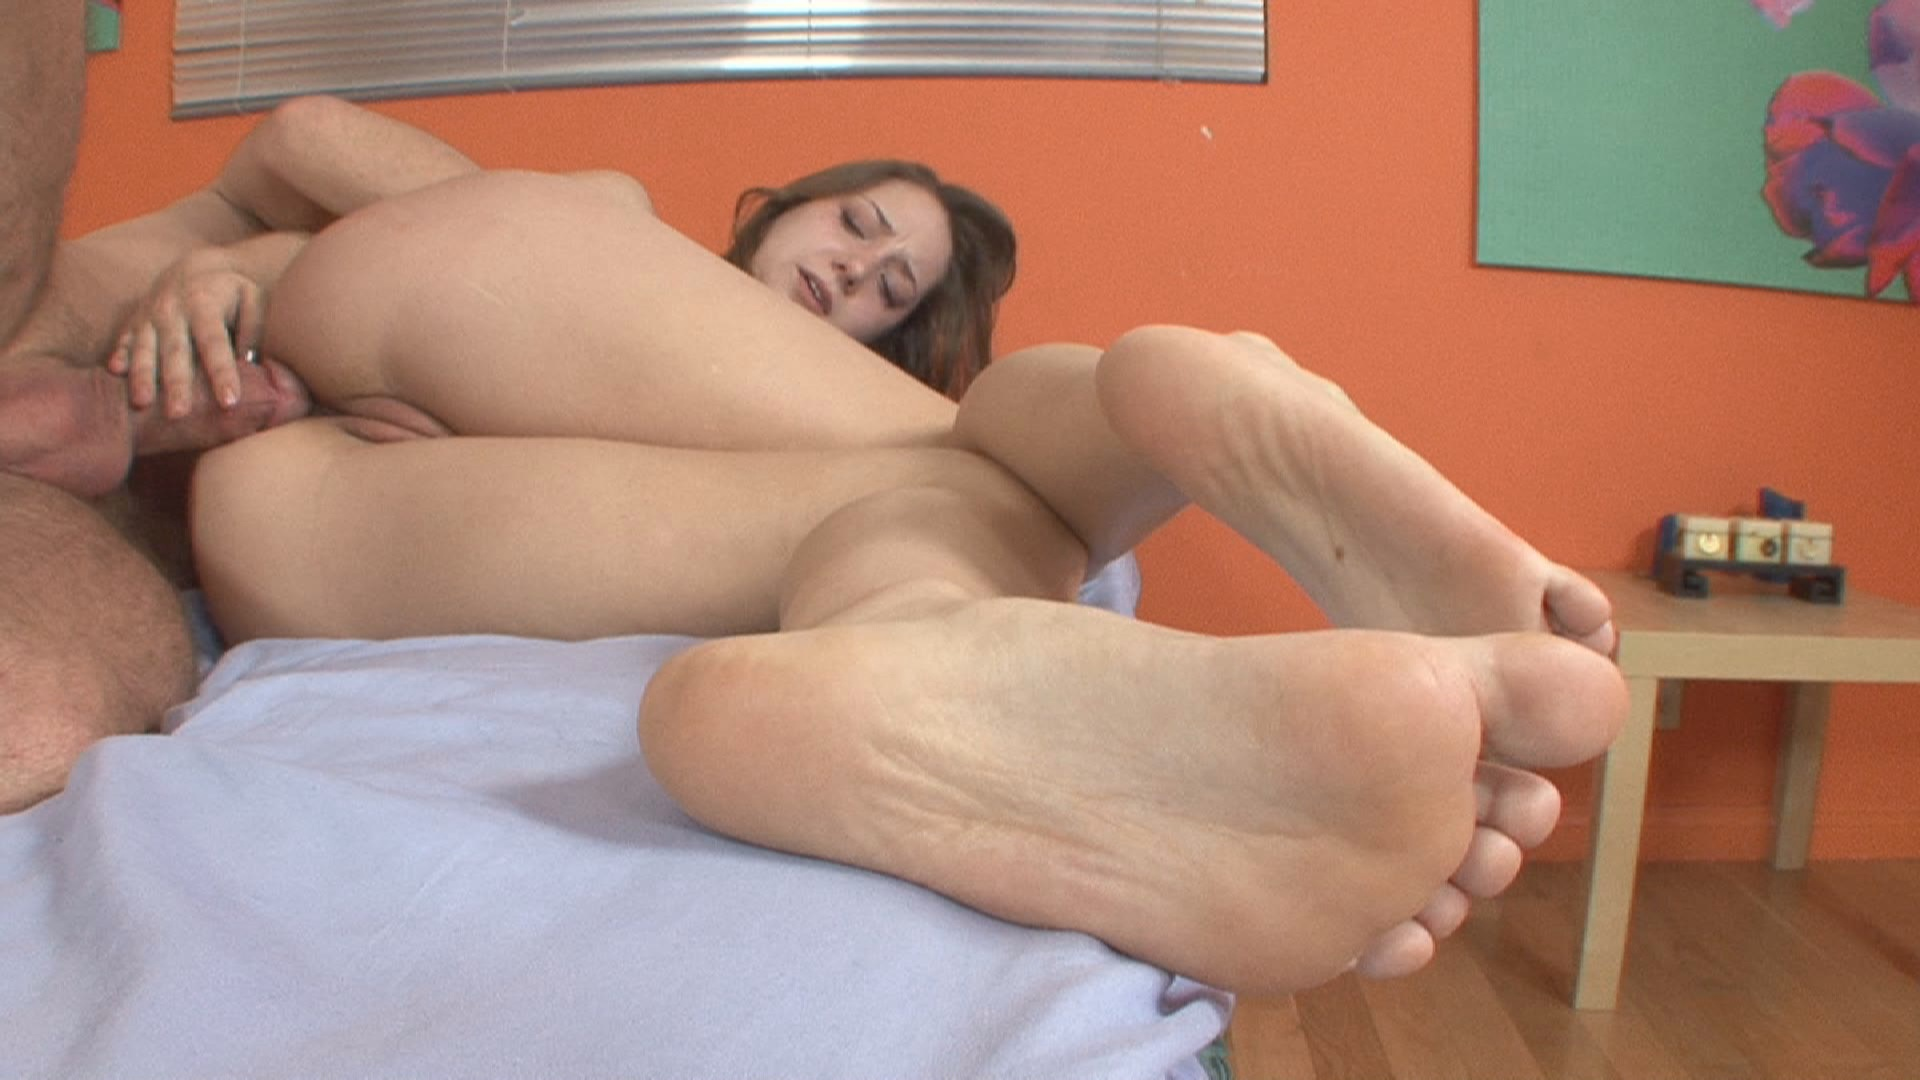 Barefoot Confidential 82 xvideos